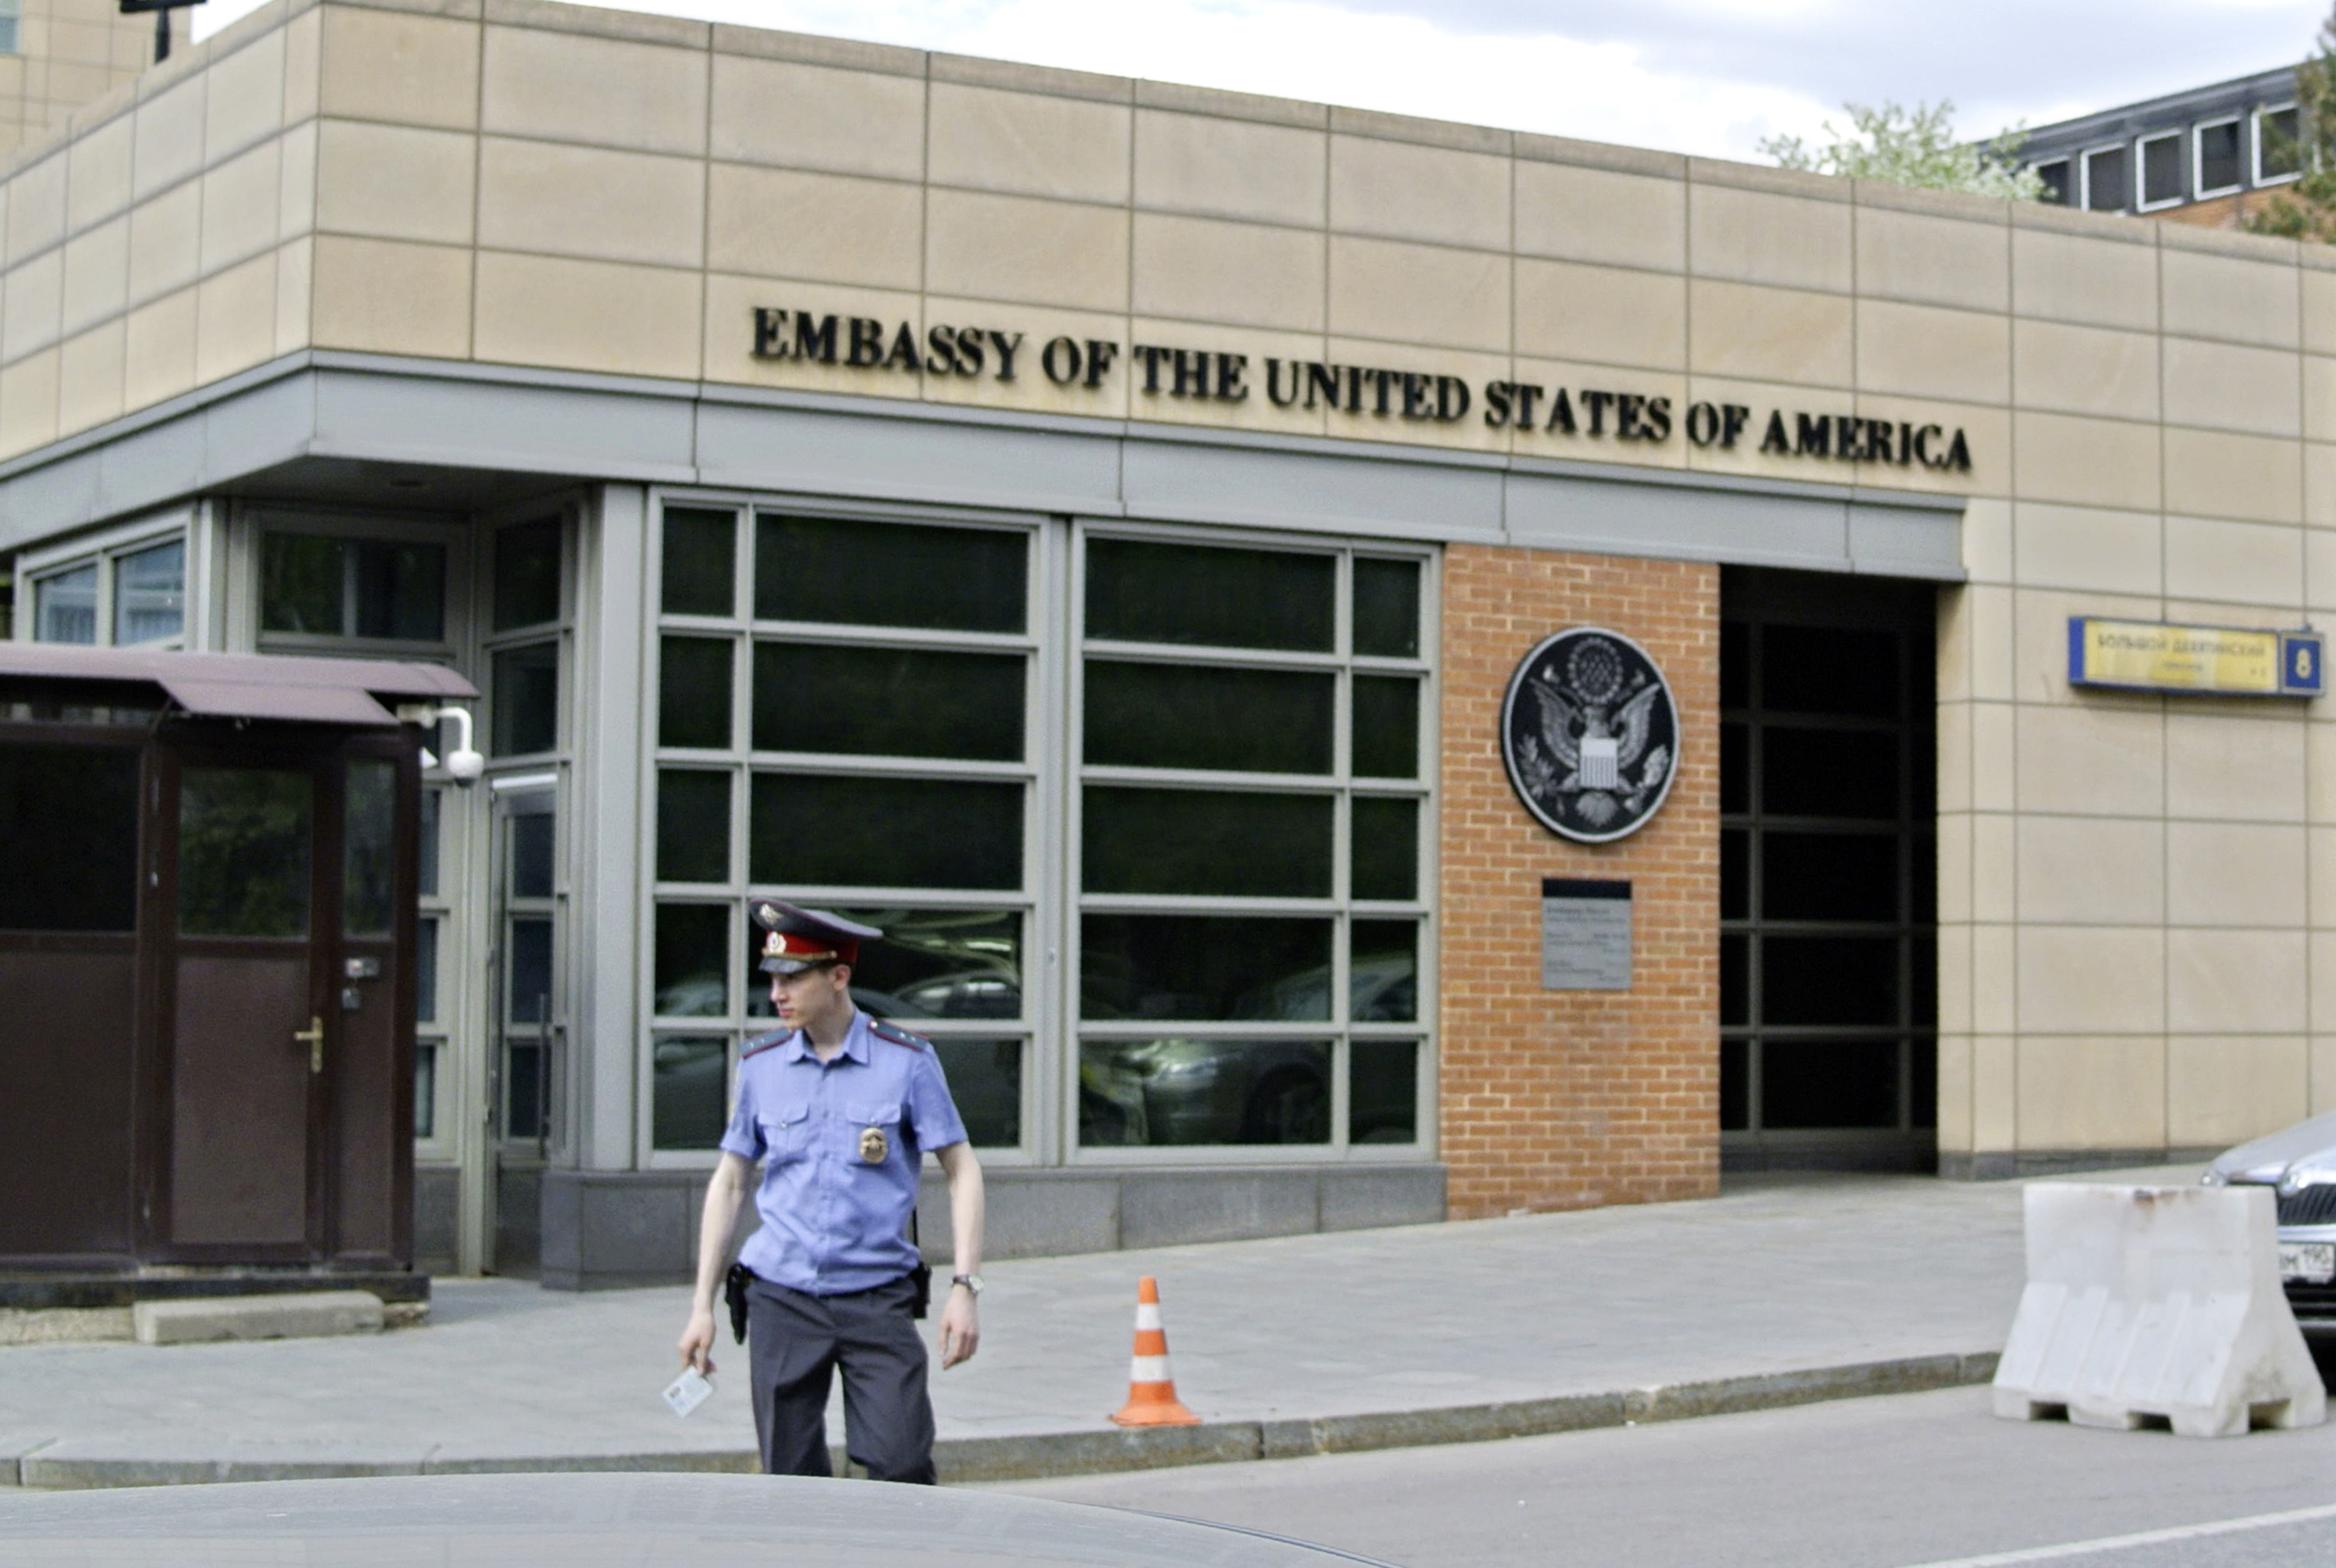 US Embassy in Russia stops issuing tourist visas for 8 days